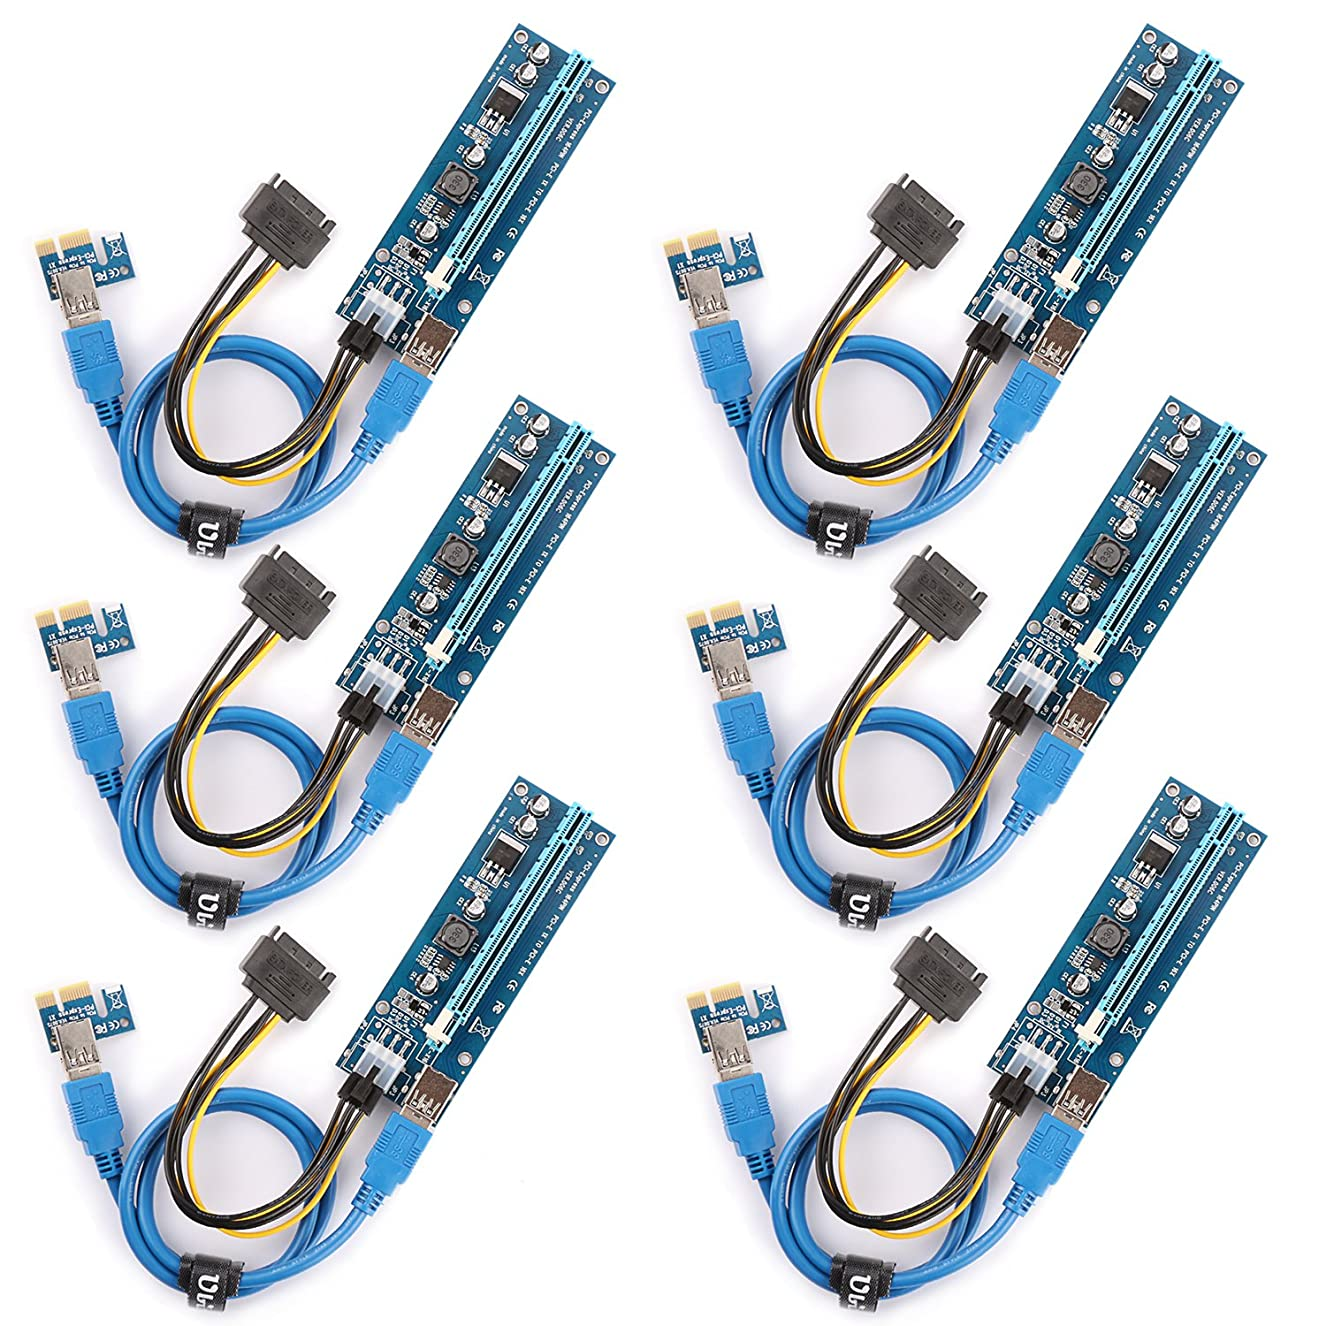 Ubit The 6 Pack PCI-E Riser for Bitcoin\Litecoin\ ETH Coin Mining Dedicated Graphics Card PCI-E Riser 1X to 16X Riser Card 164P / 60cm USB 3.0 Extension Cable & MOLEX to SATA Power Cable (Ver006C) ztyzmsvqfd6430